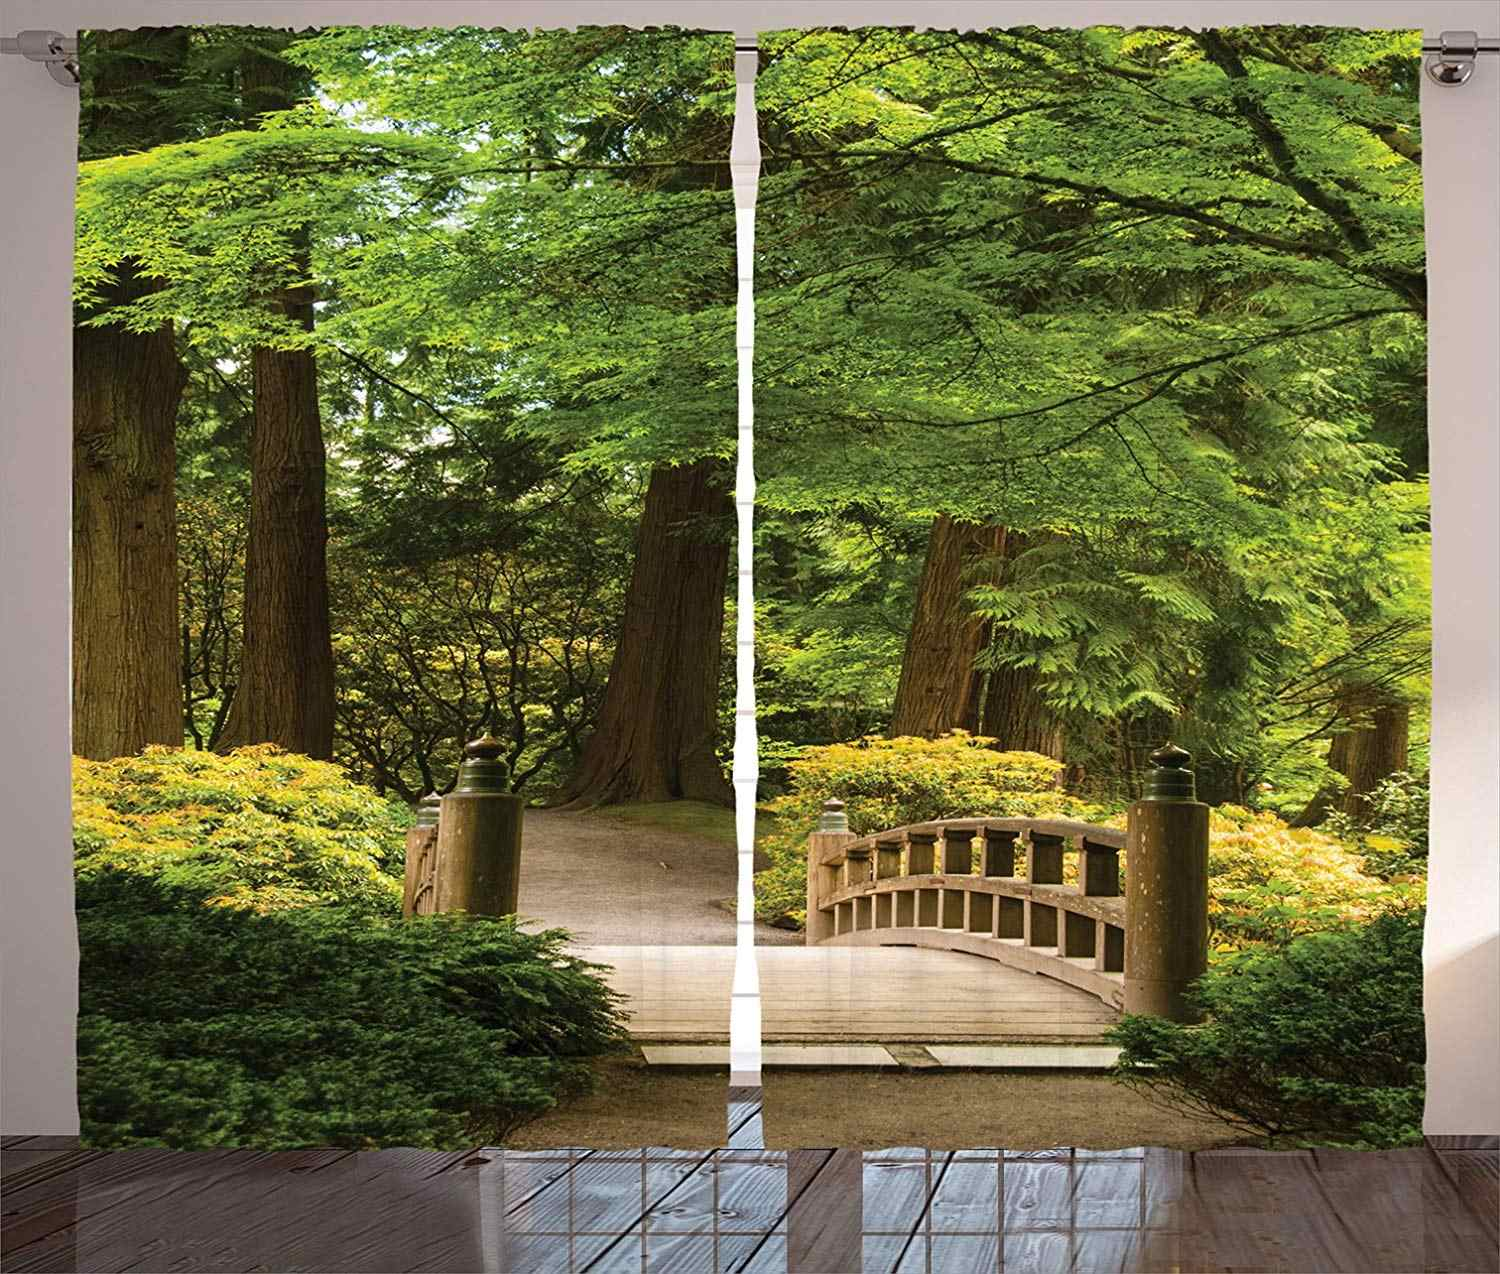 Japanese Curtains Wooden Bridge Over A Pond Garden Calmness Shadow Trees Serenity Nature Living Room Bedroom 2 Panel Set